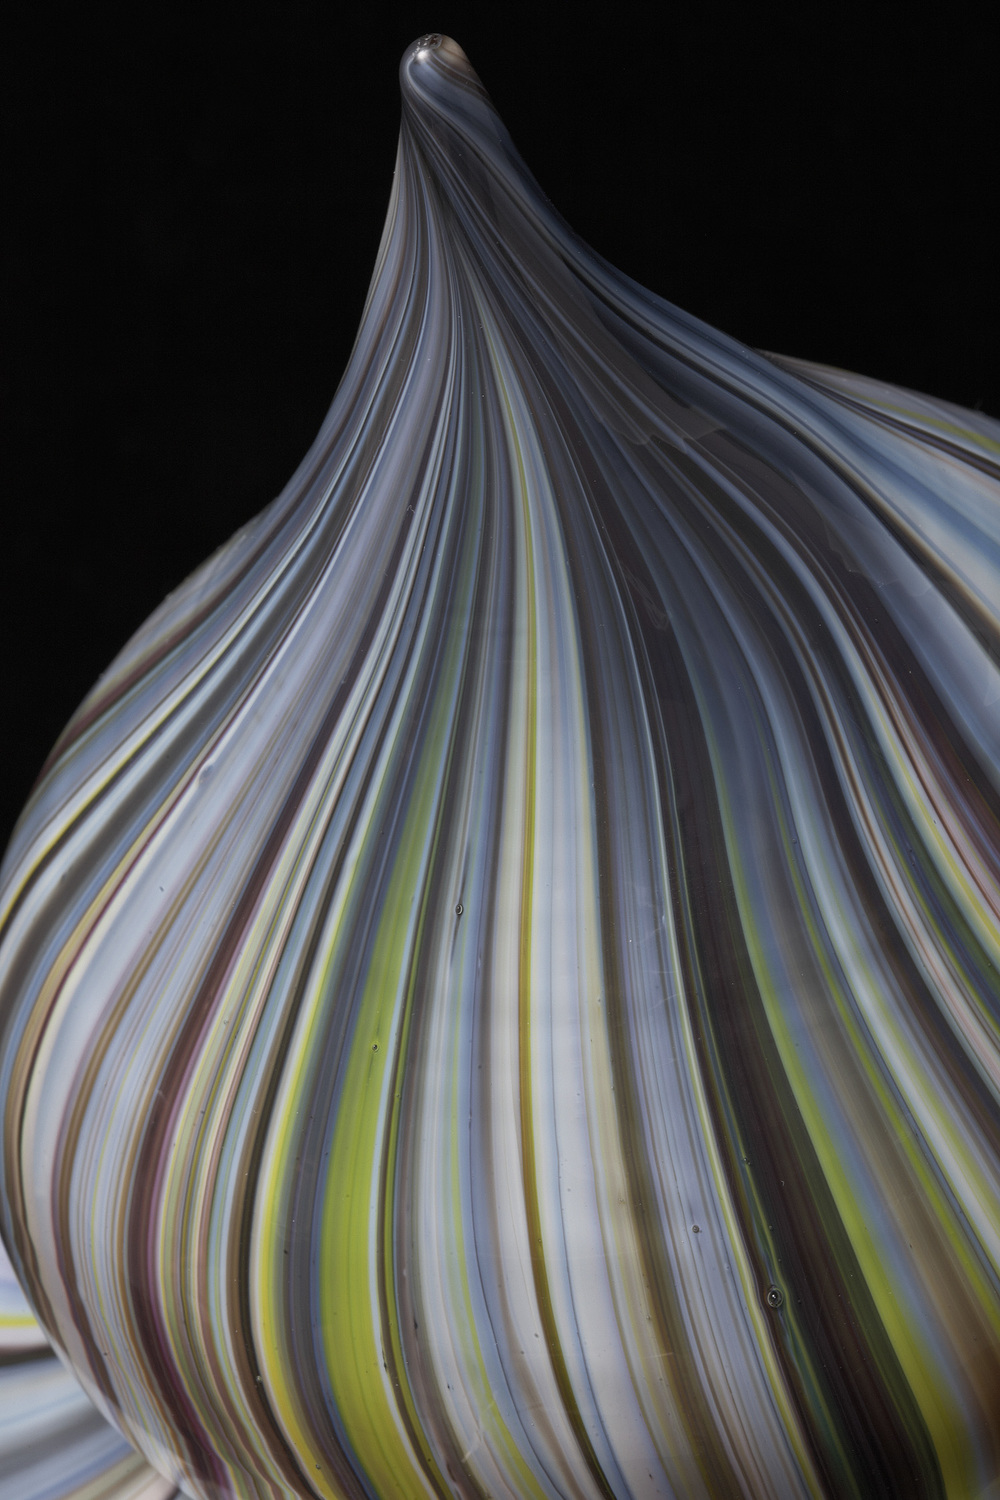 The Seed I (Murano Series), 2009, detail